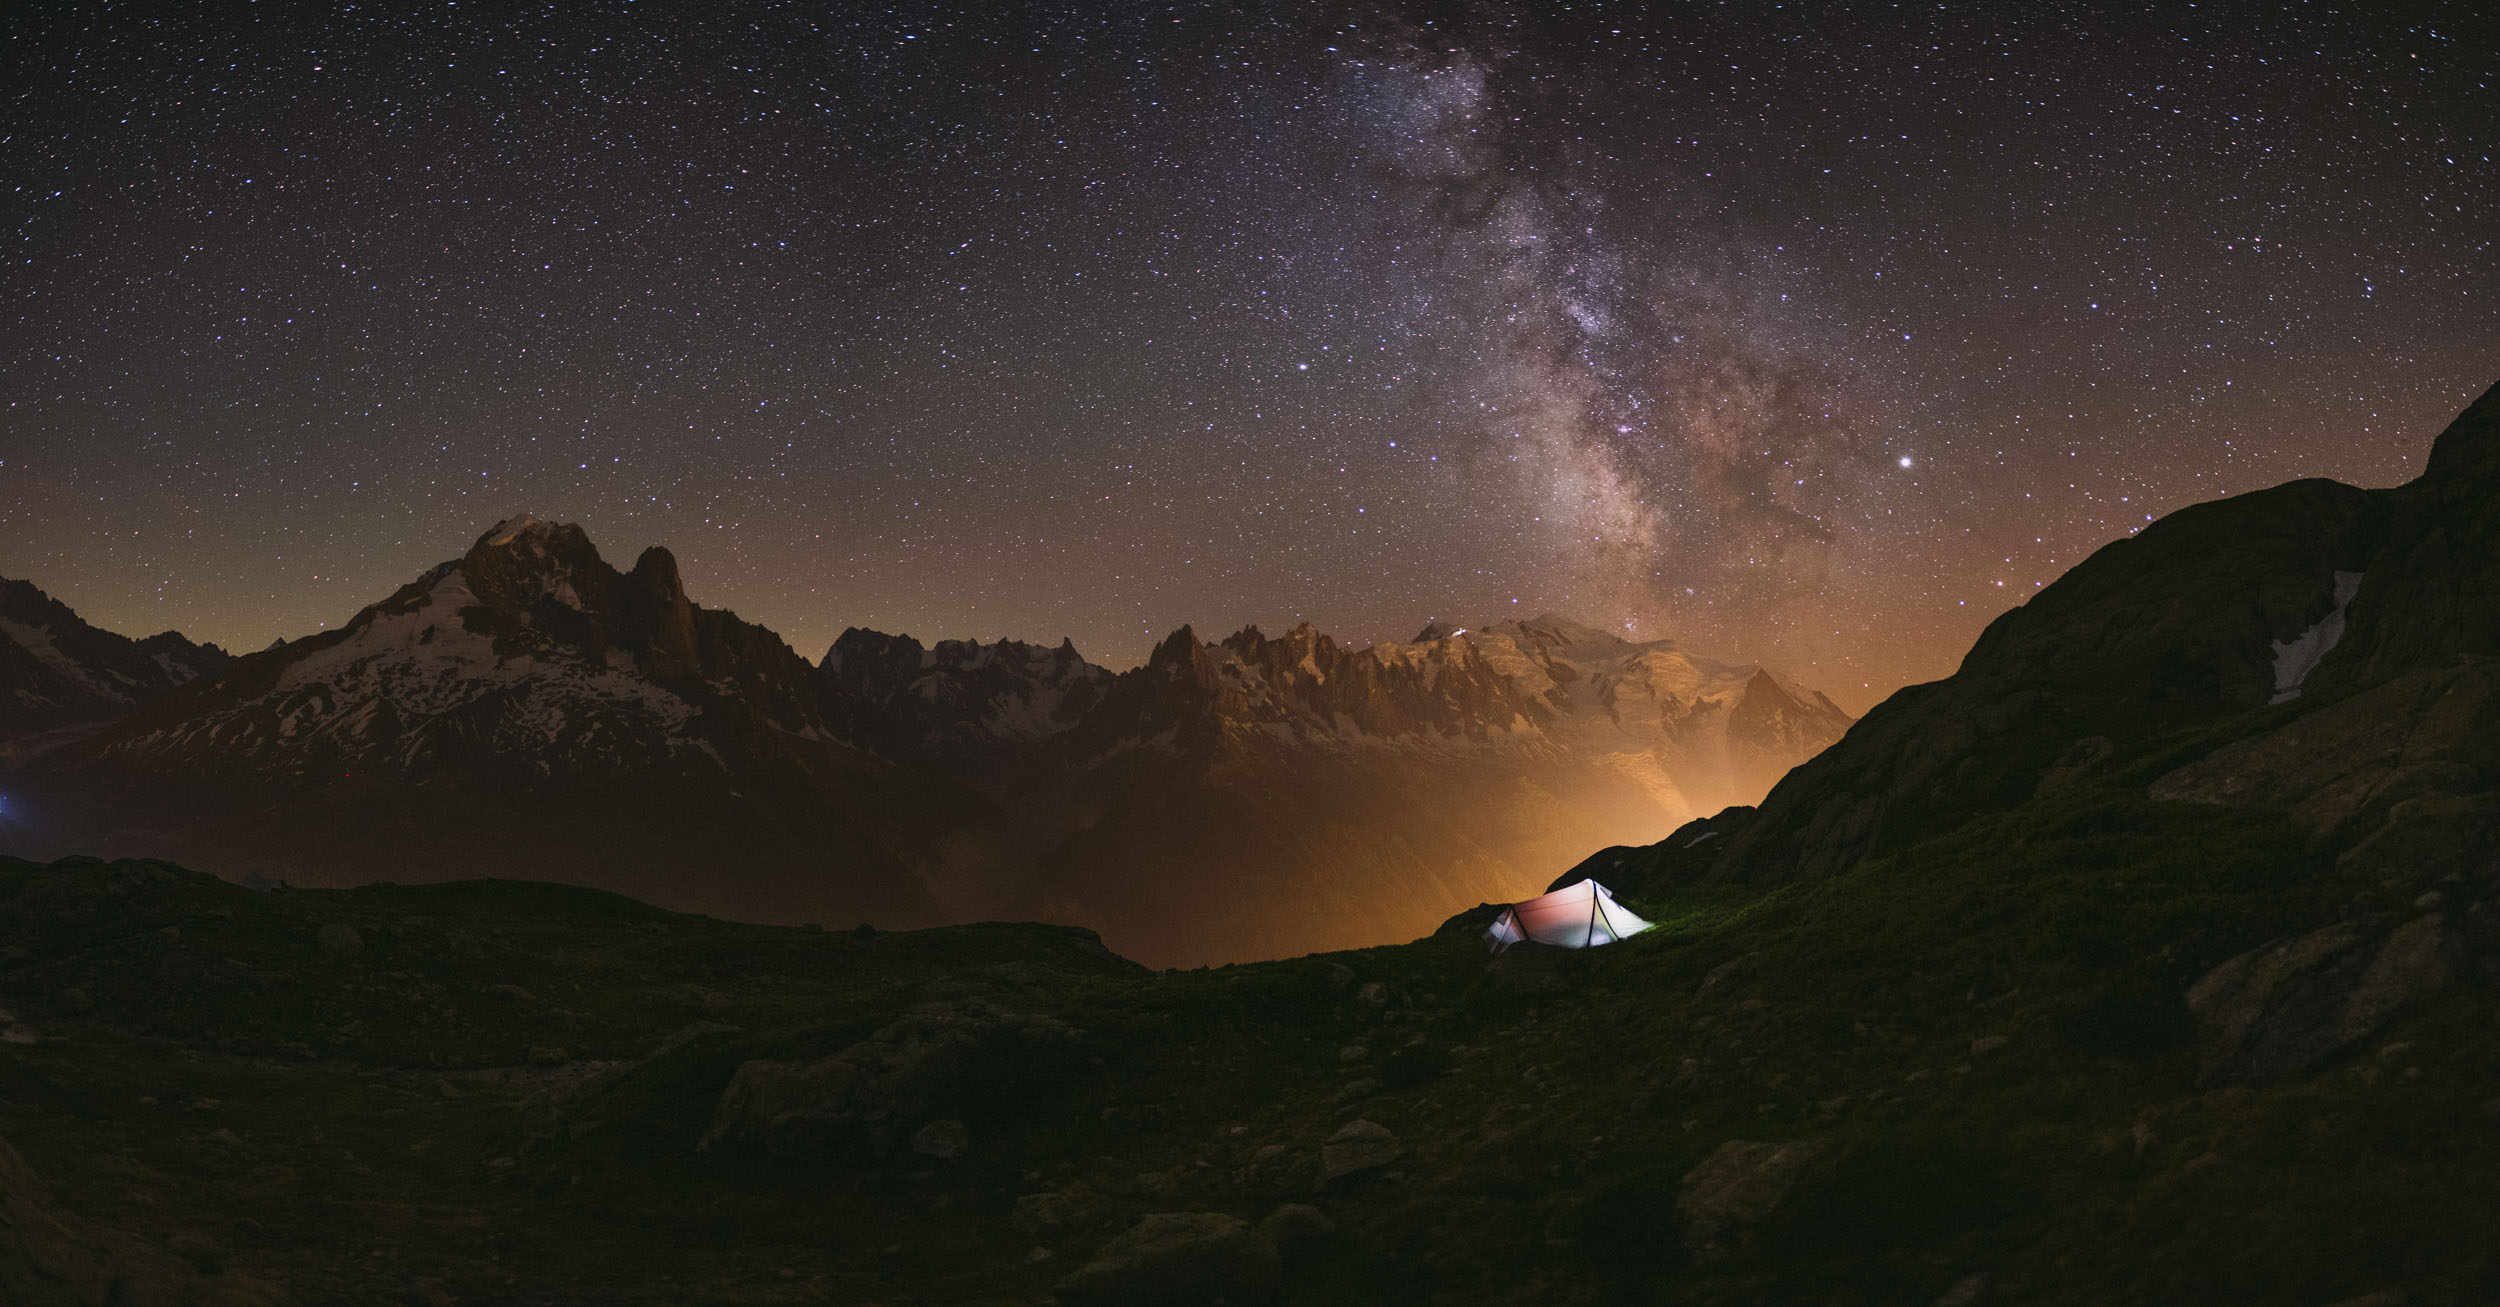 Milky Way over Mont Blanc, and my tent @ Lac des Cheserys, France.